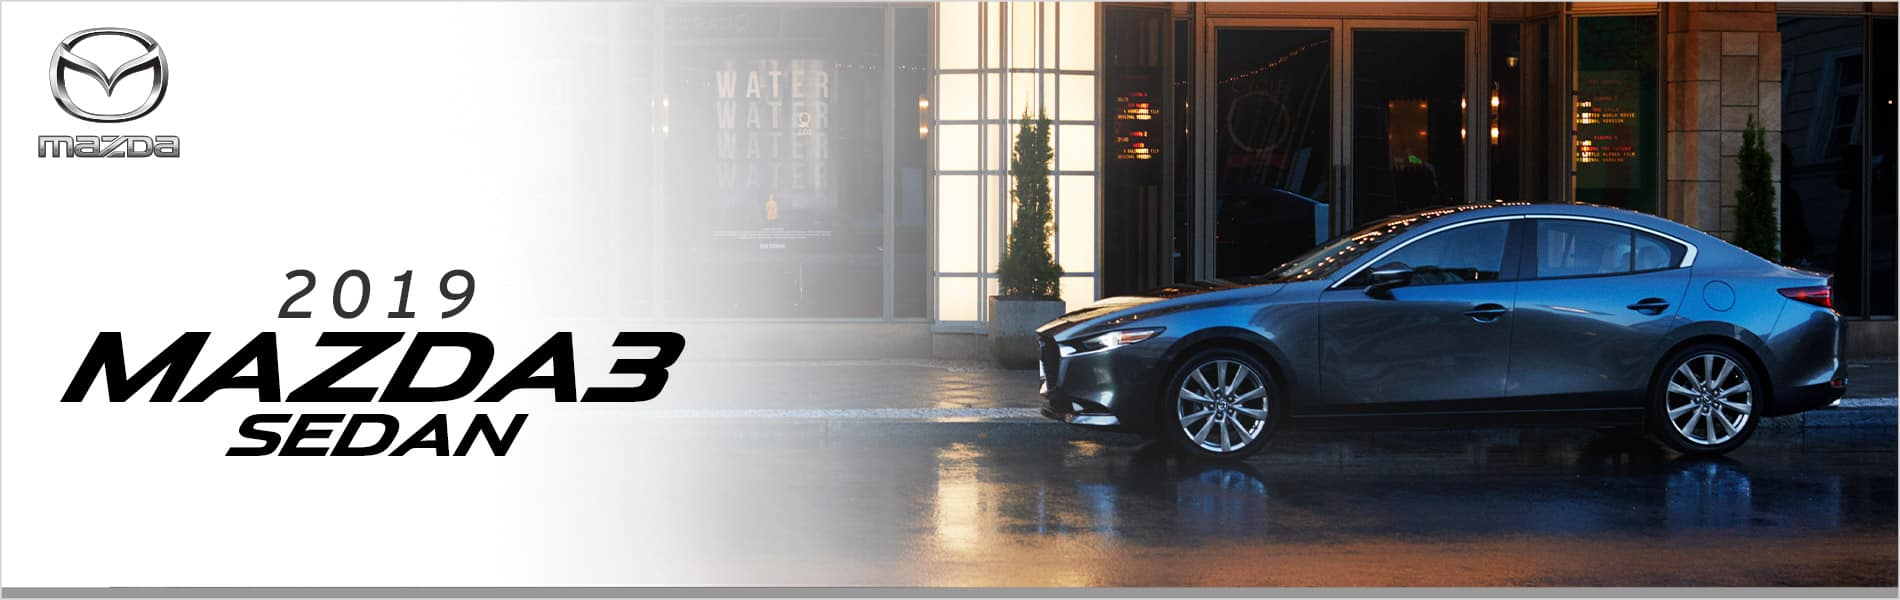 The new 2019 Mazda3 Sedan at Mazda of Bedford in Cleveland